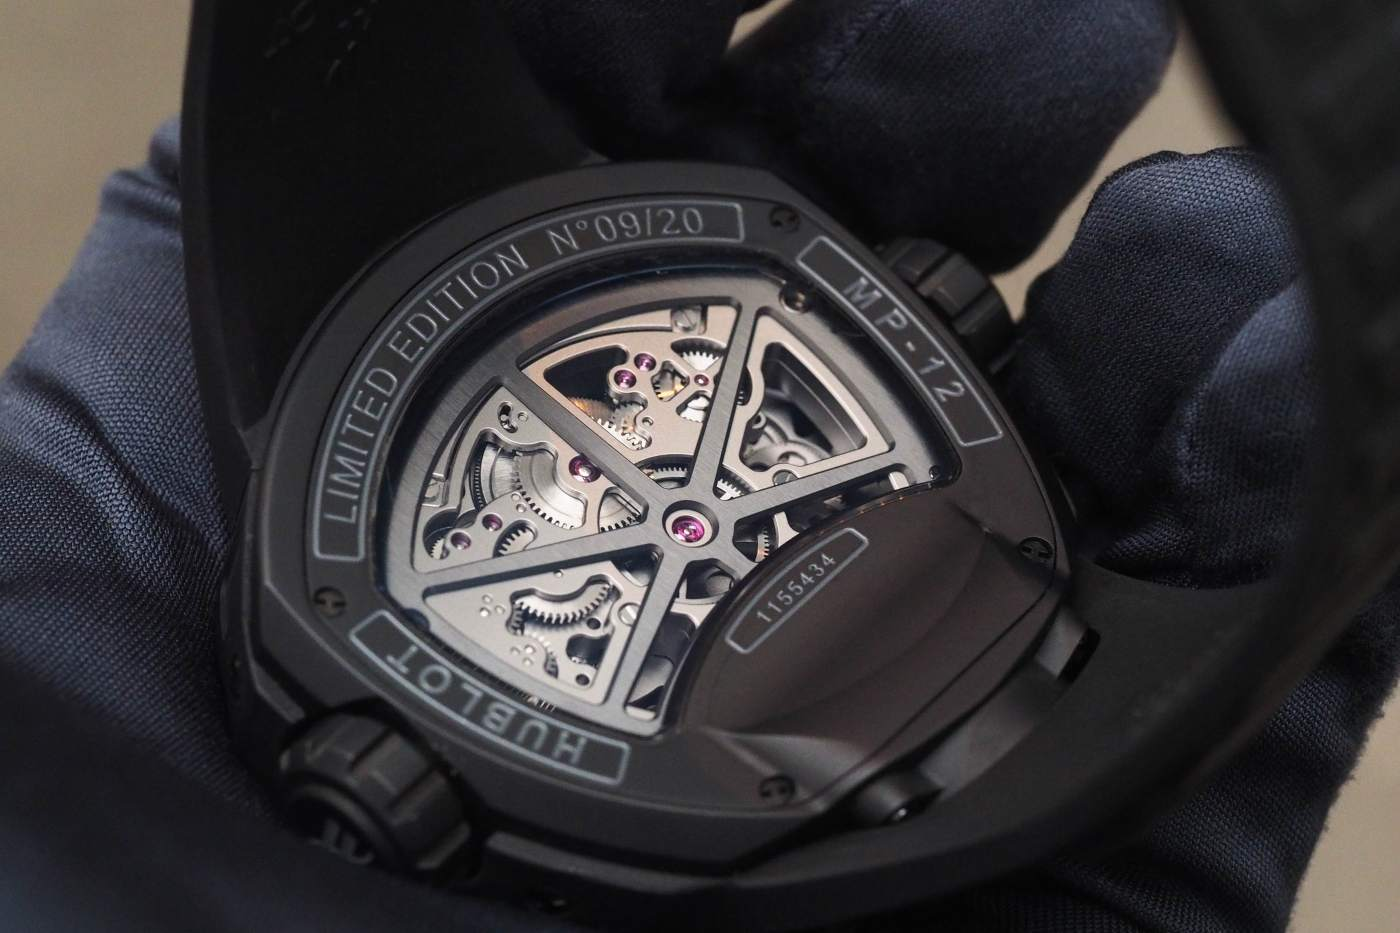 Hublot MP-12 Key of Time Skeleton caseback